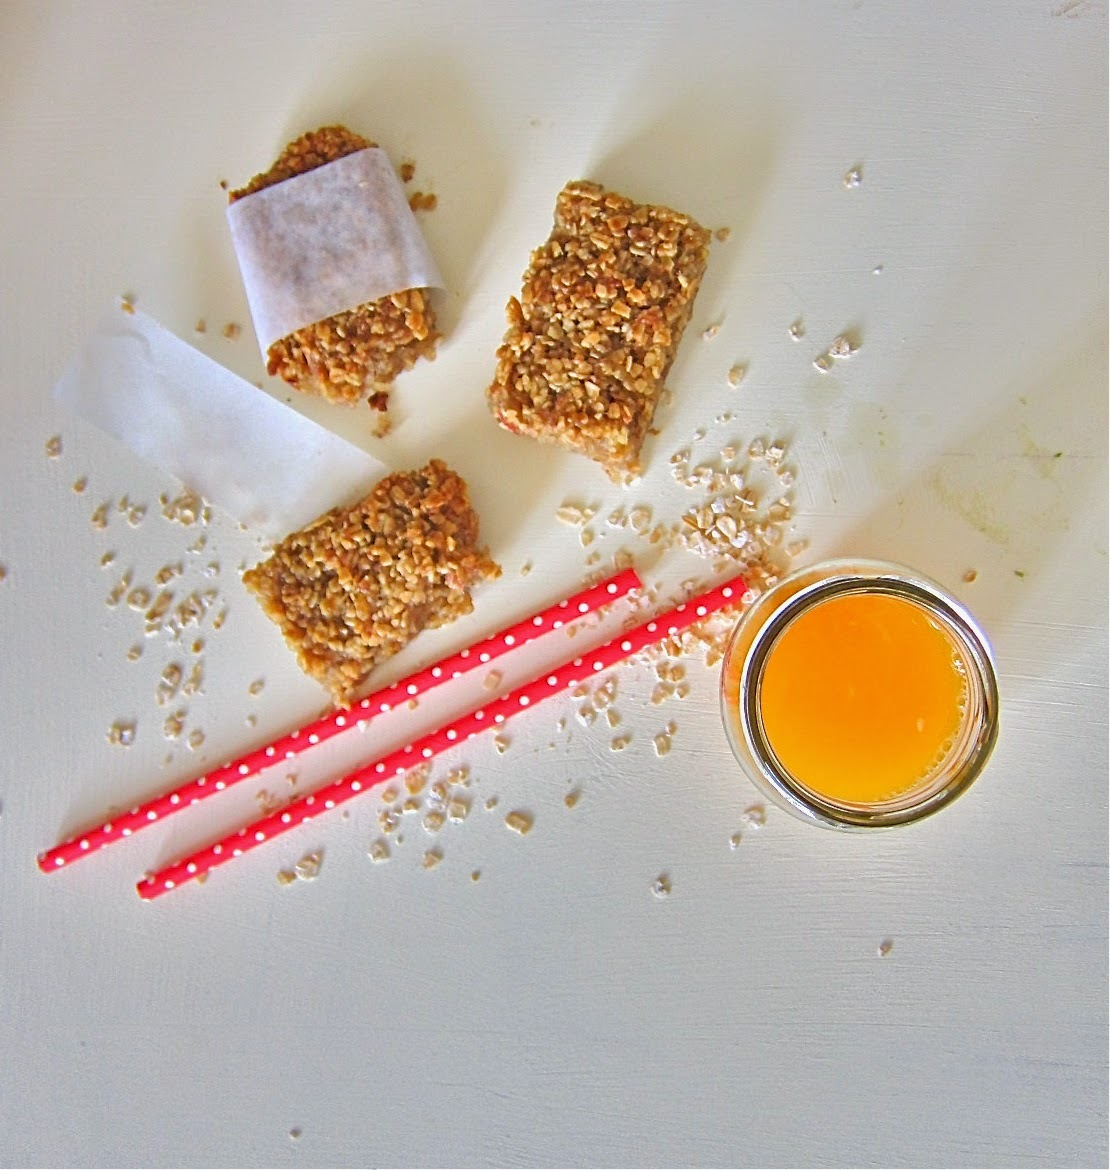 Barritas de avena y plátano / Oat and banana Bars